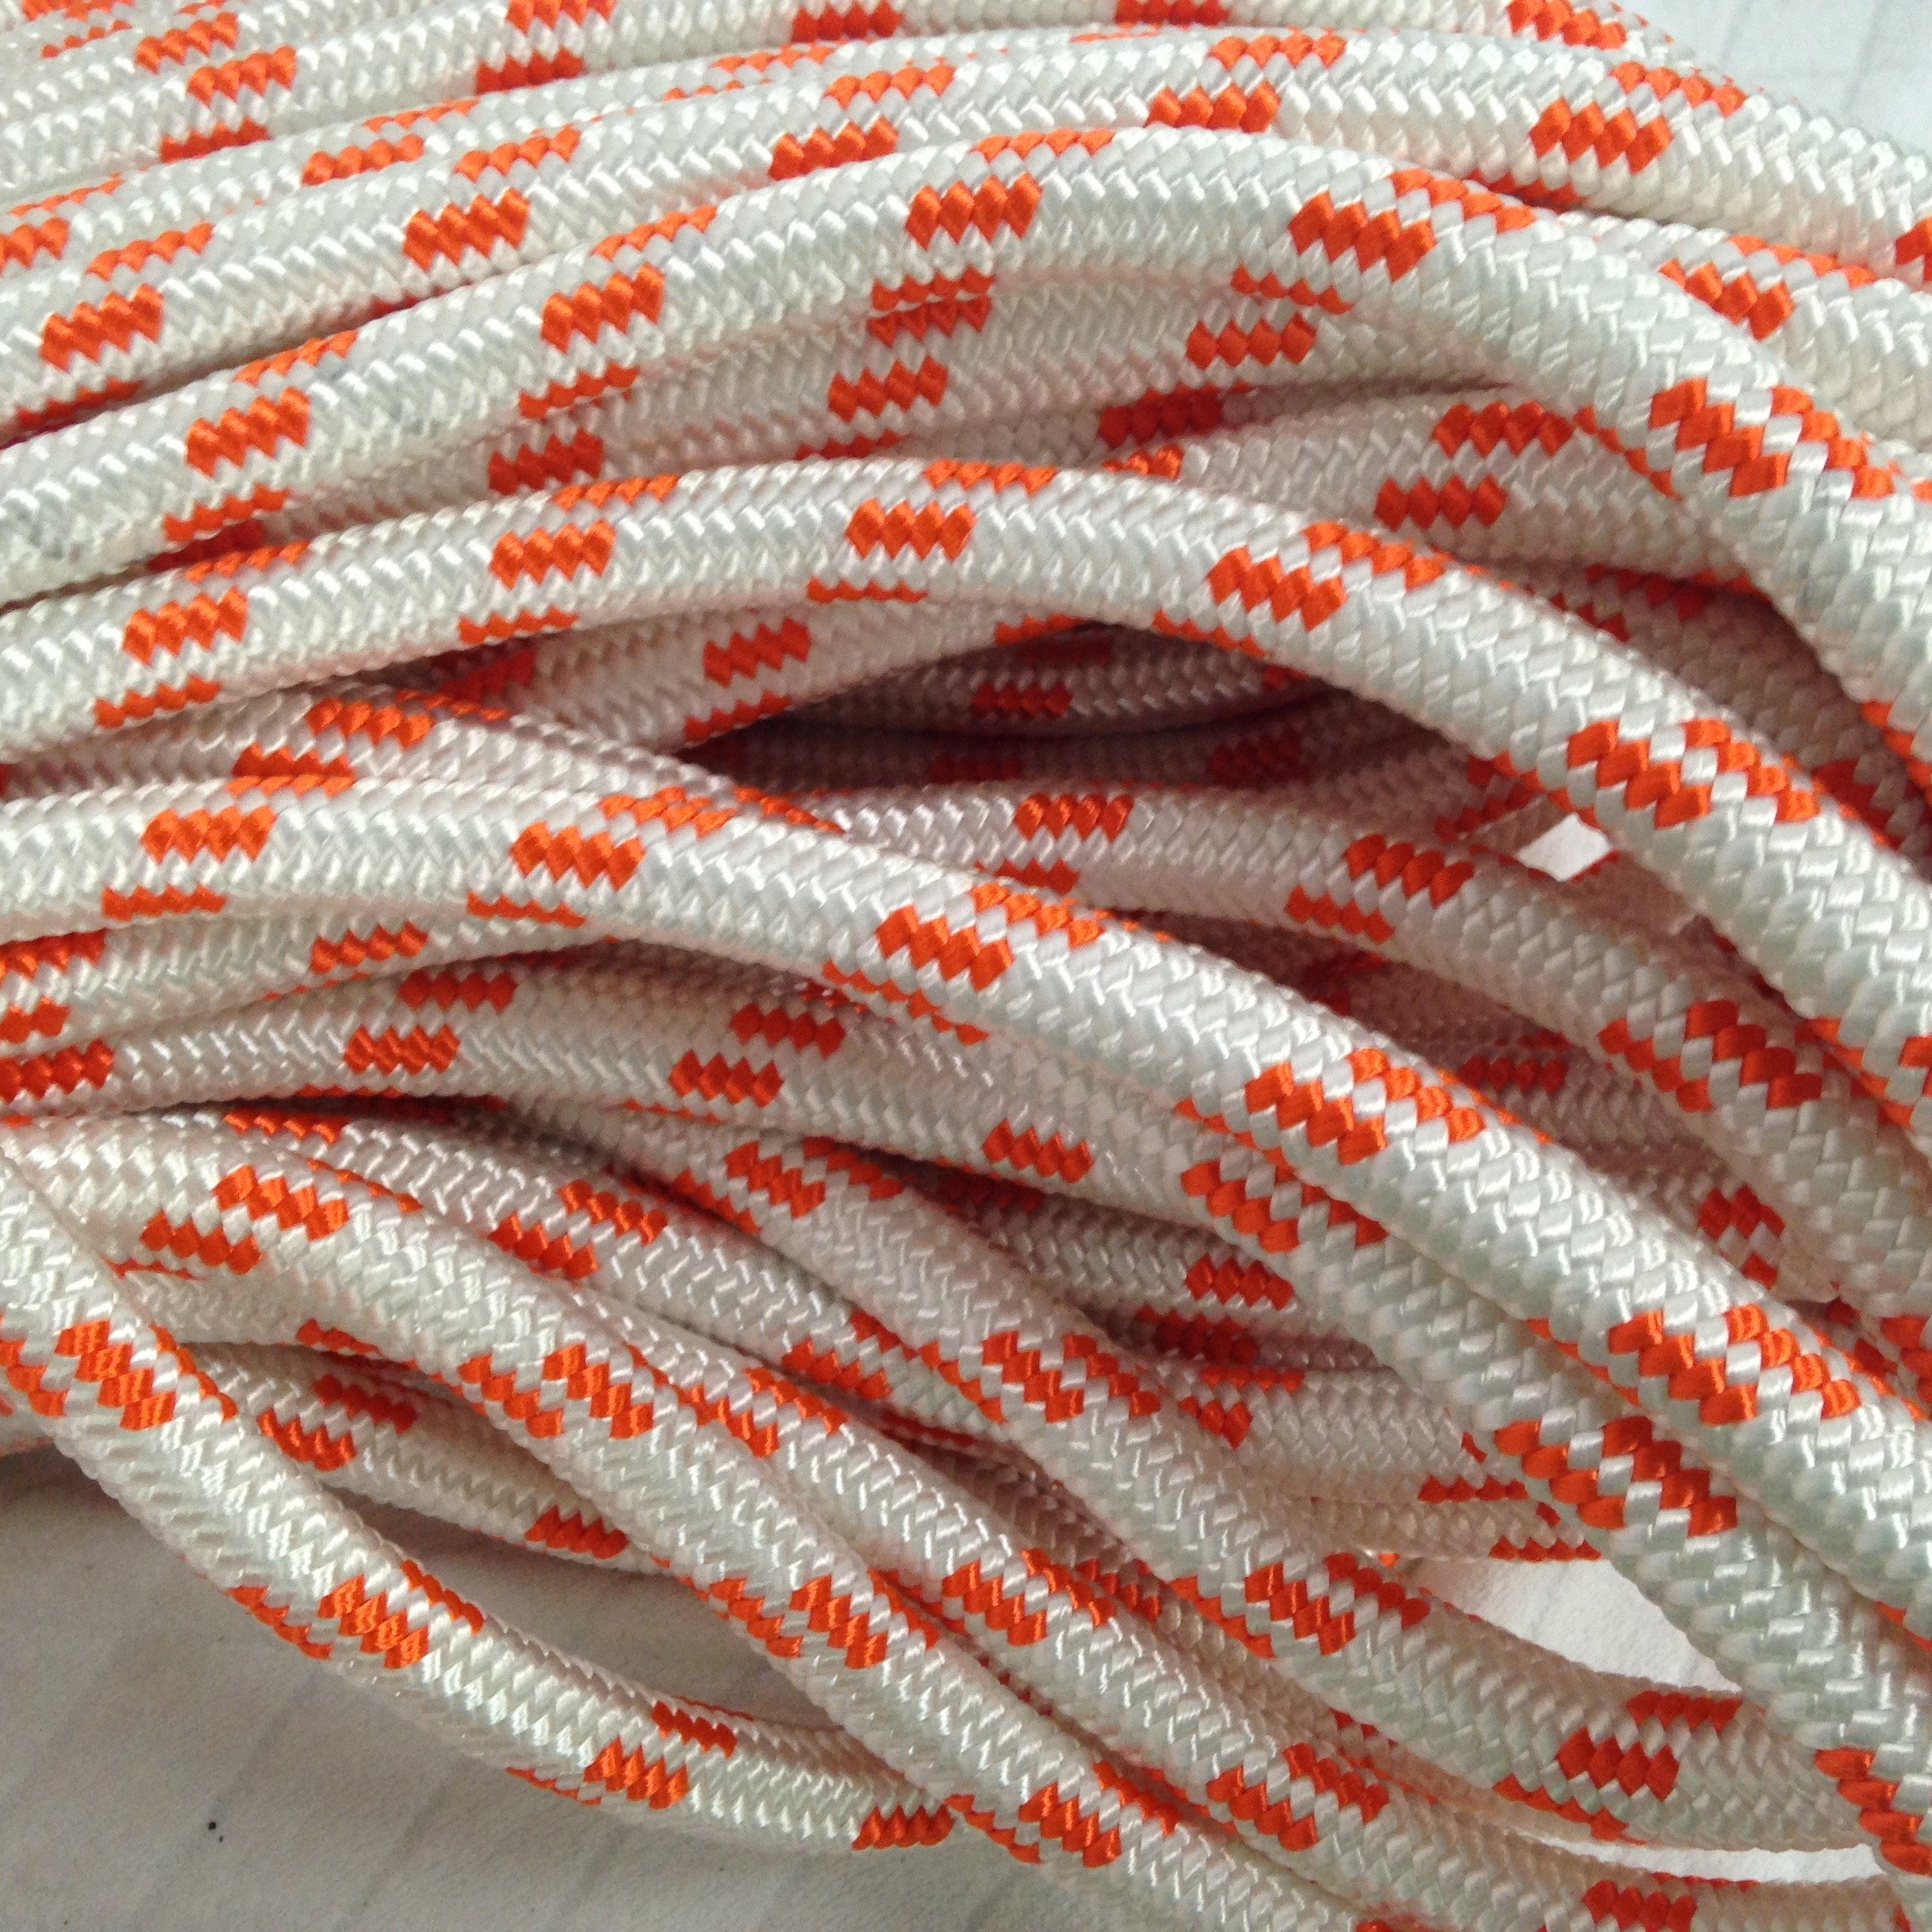 5/8'' By 200' Double Braided Polyester Arborist Bull Rope